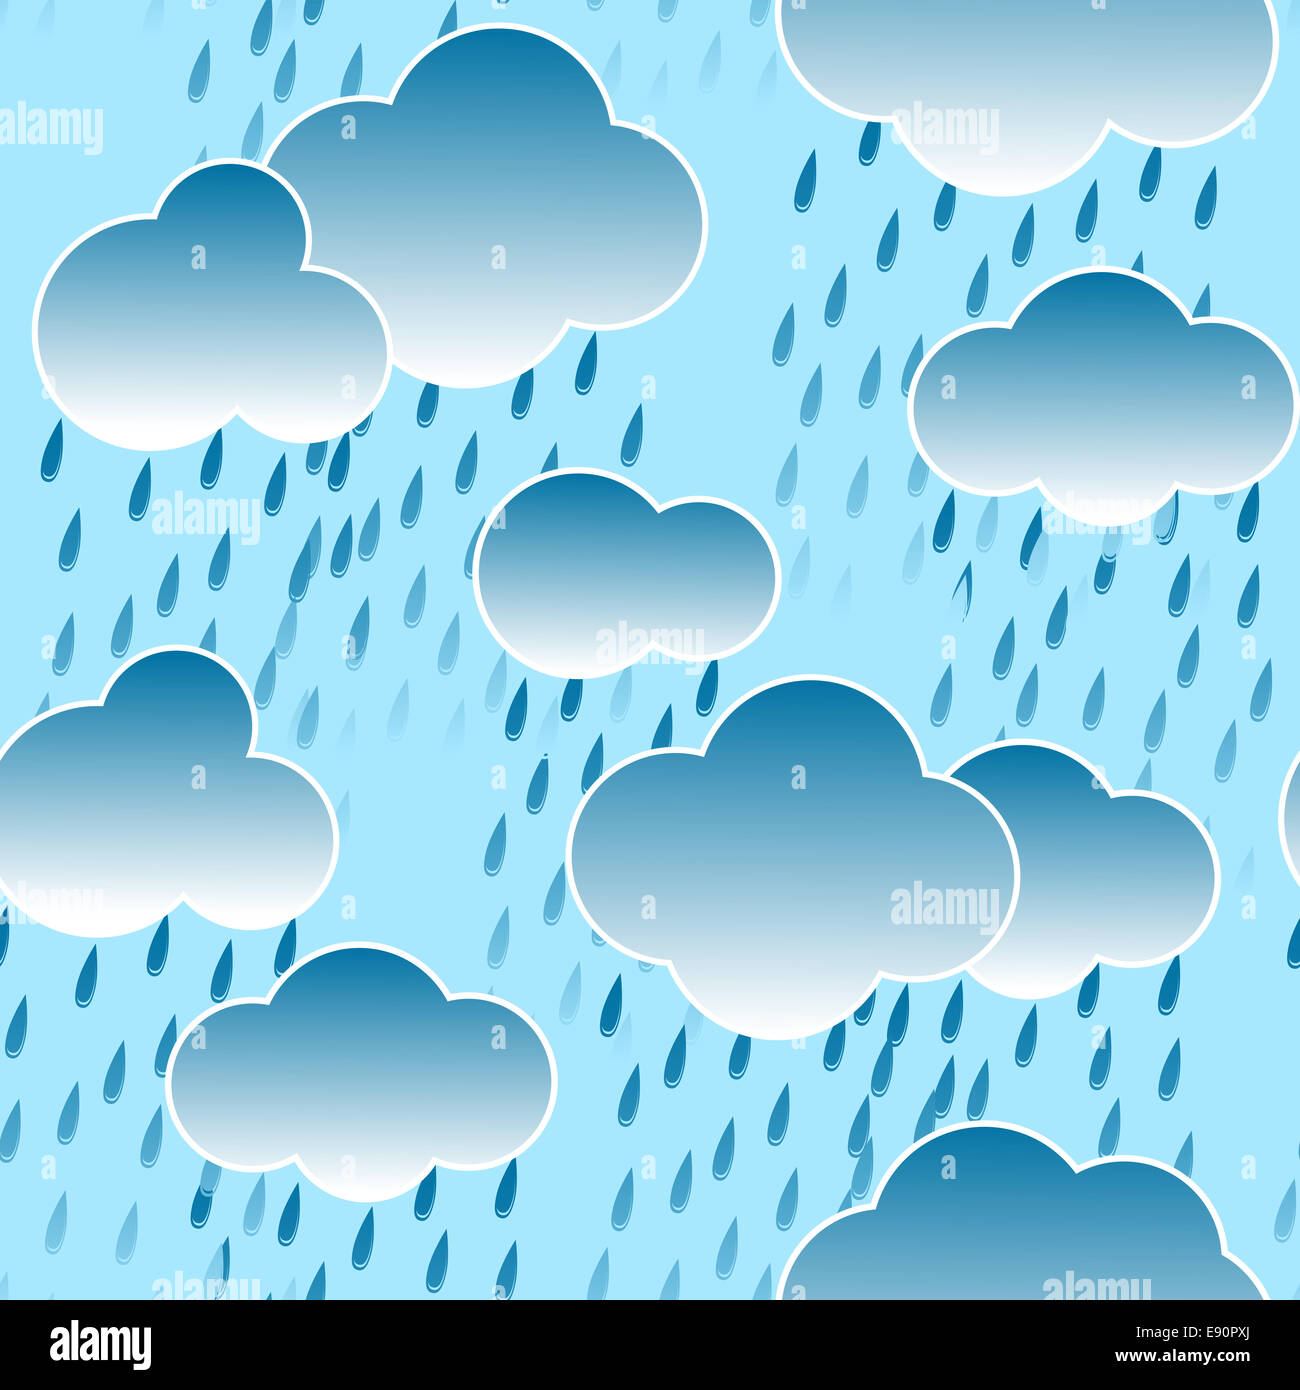 Raindrops Live Wallpaper: Background With Clouds And Rain Drops Stock Photo